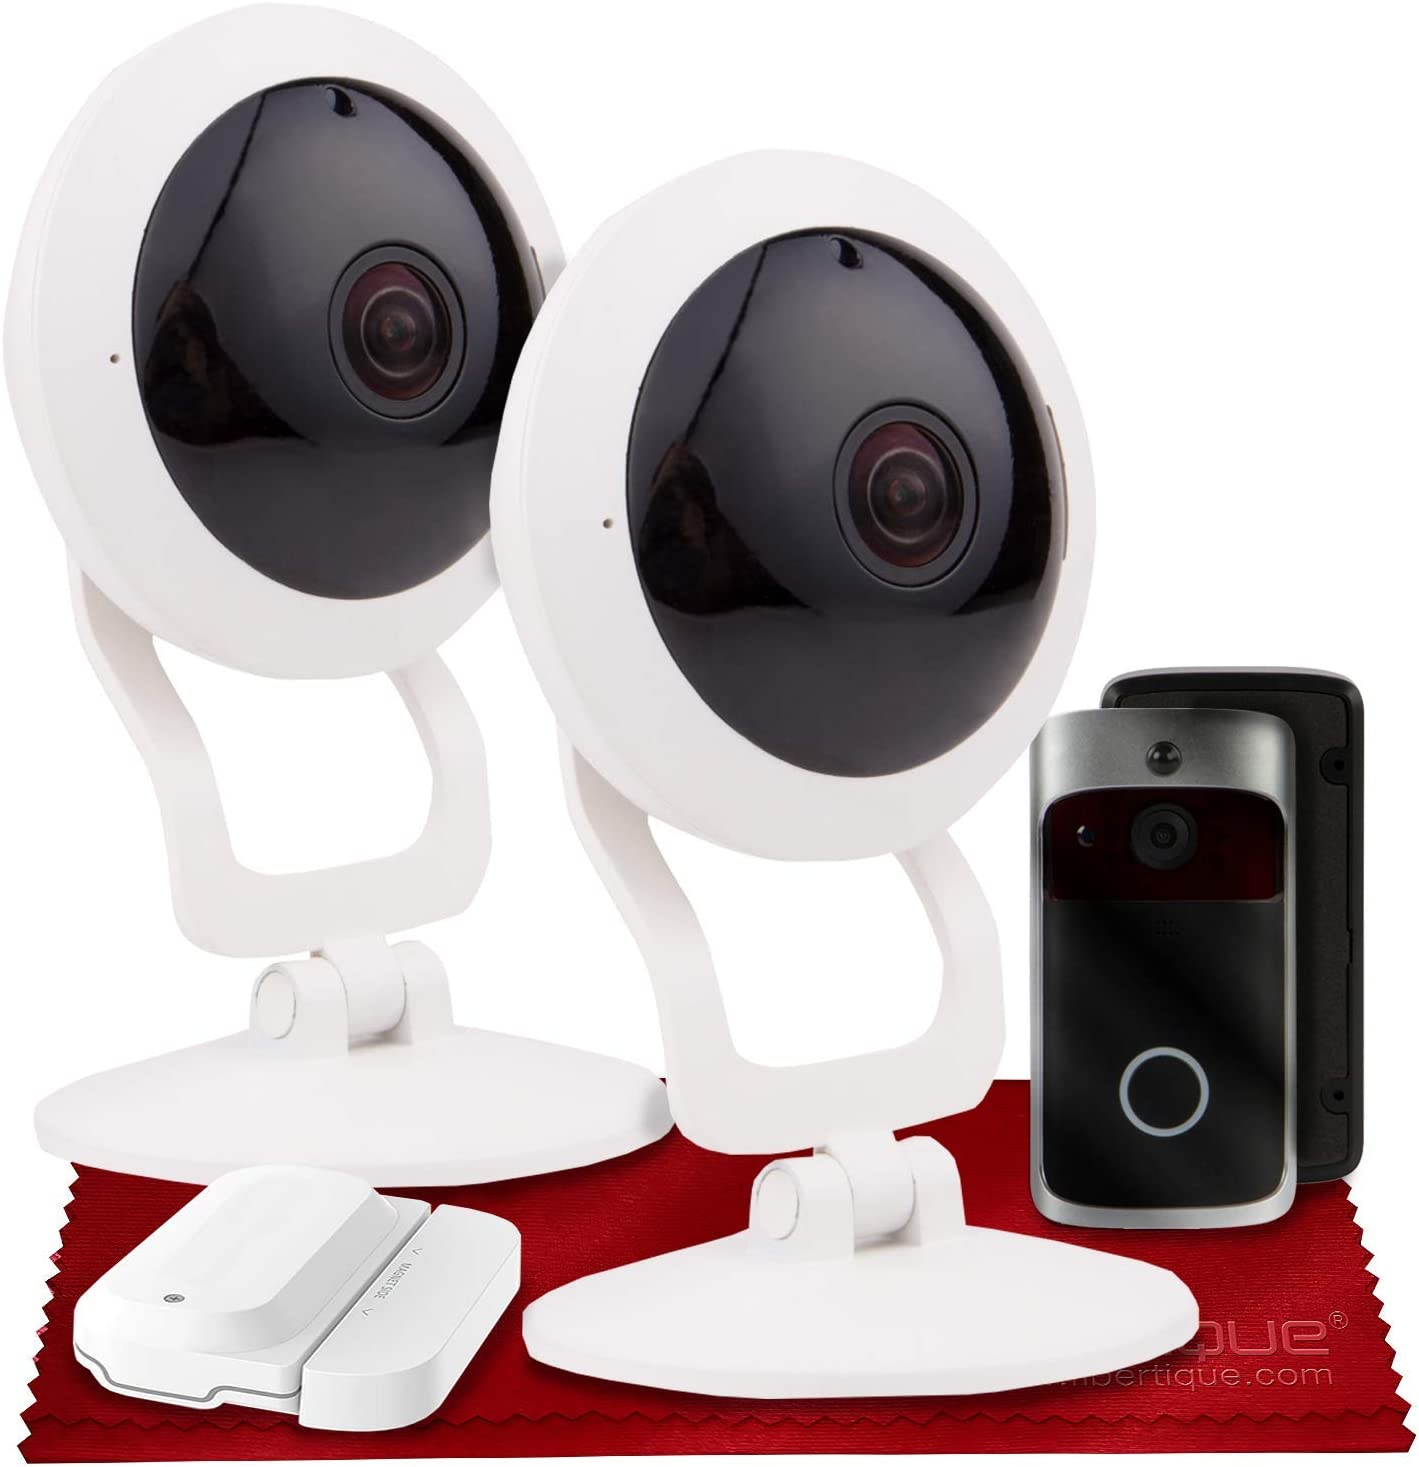 Vivitar IPC117 360 Wide Angle 1080p HD Wi-Fi Smart Home Security Camera W/ iOS/Android App (x2) + Vivitar Wireless Video Doorbell & Vivitar WiFi Door Sensor